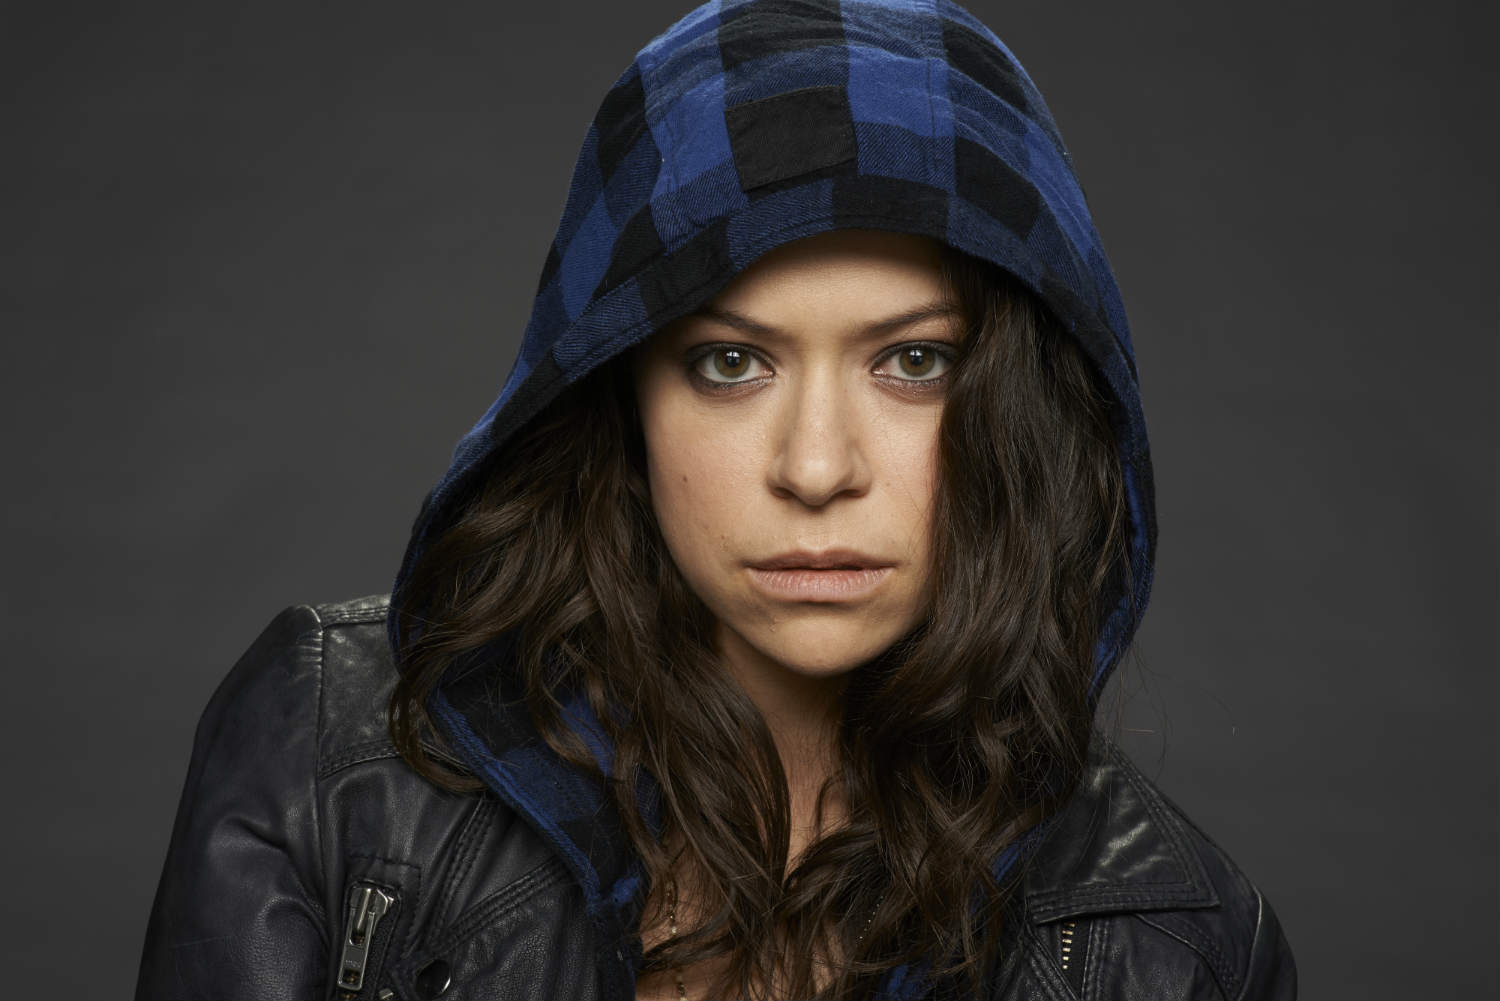 zap-orphan-black-season-2-posters-photos-20140-019